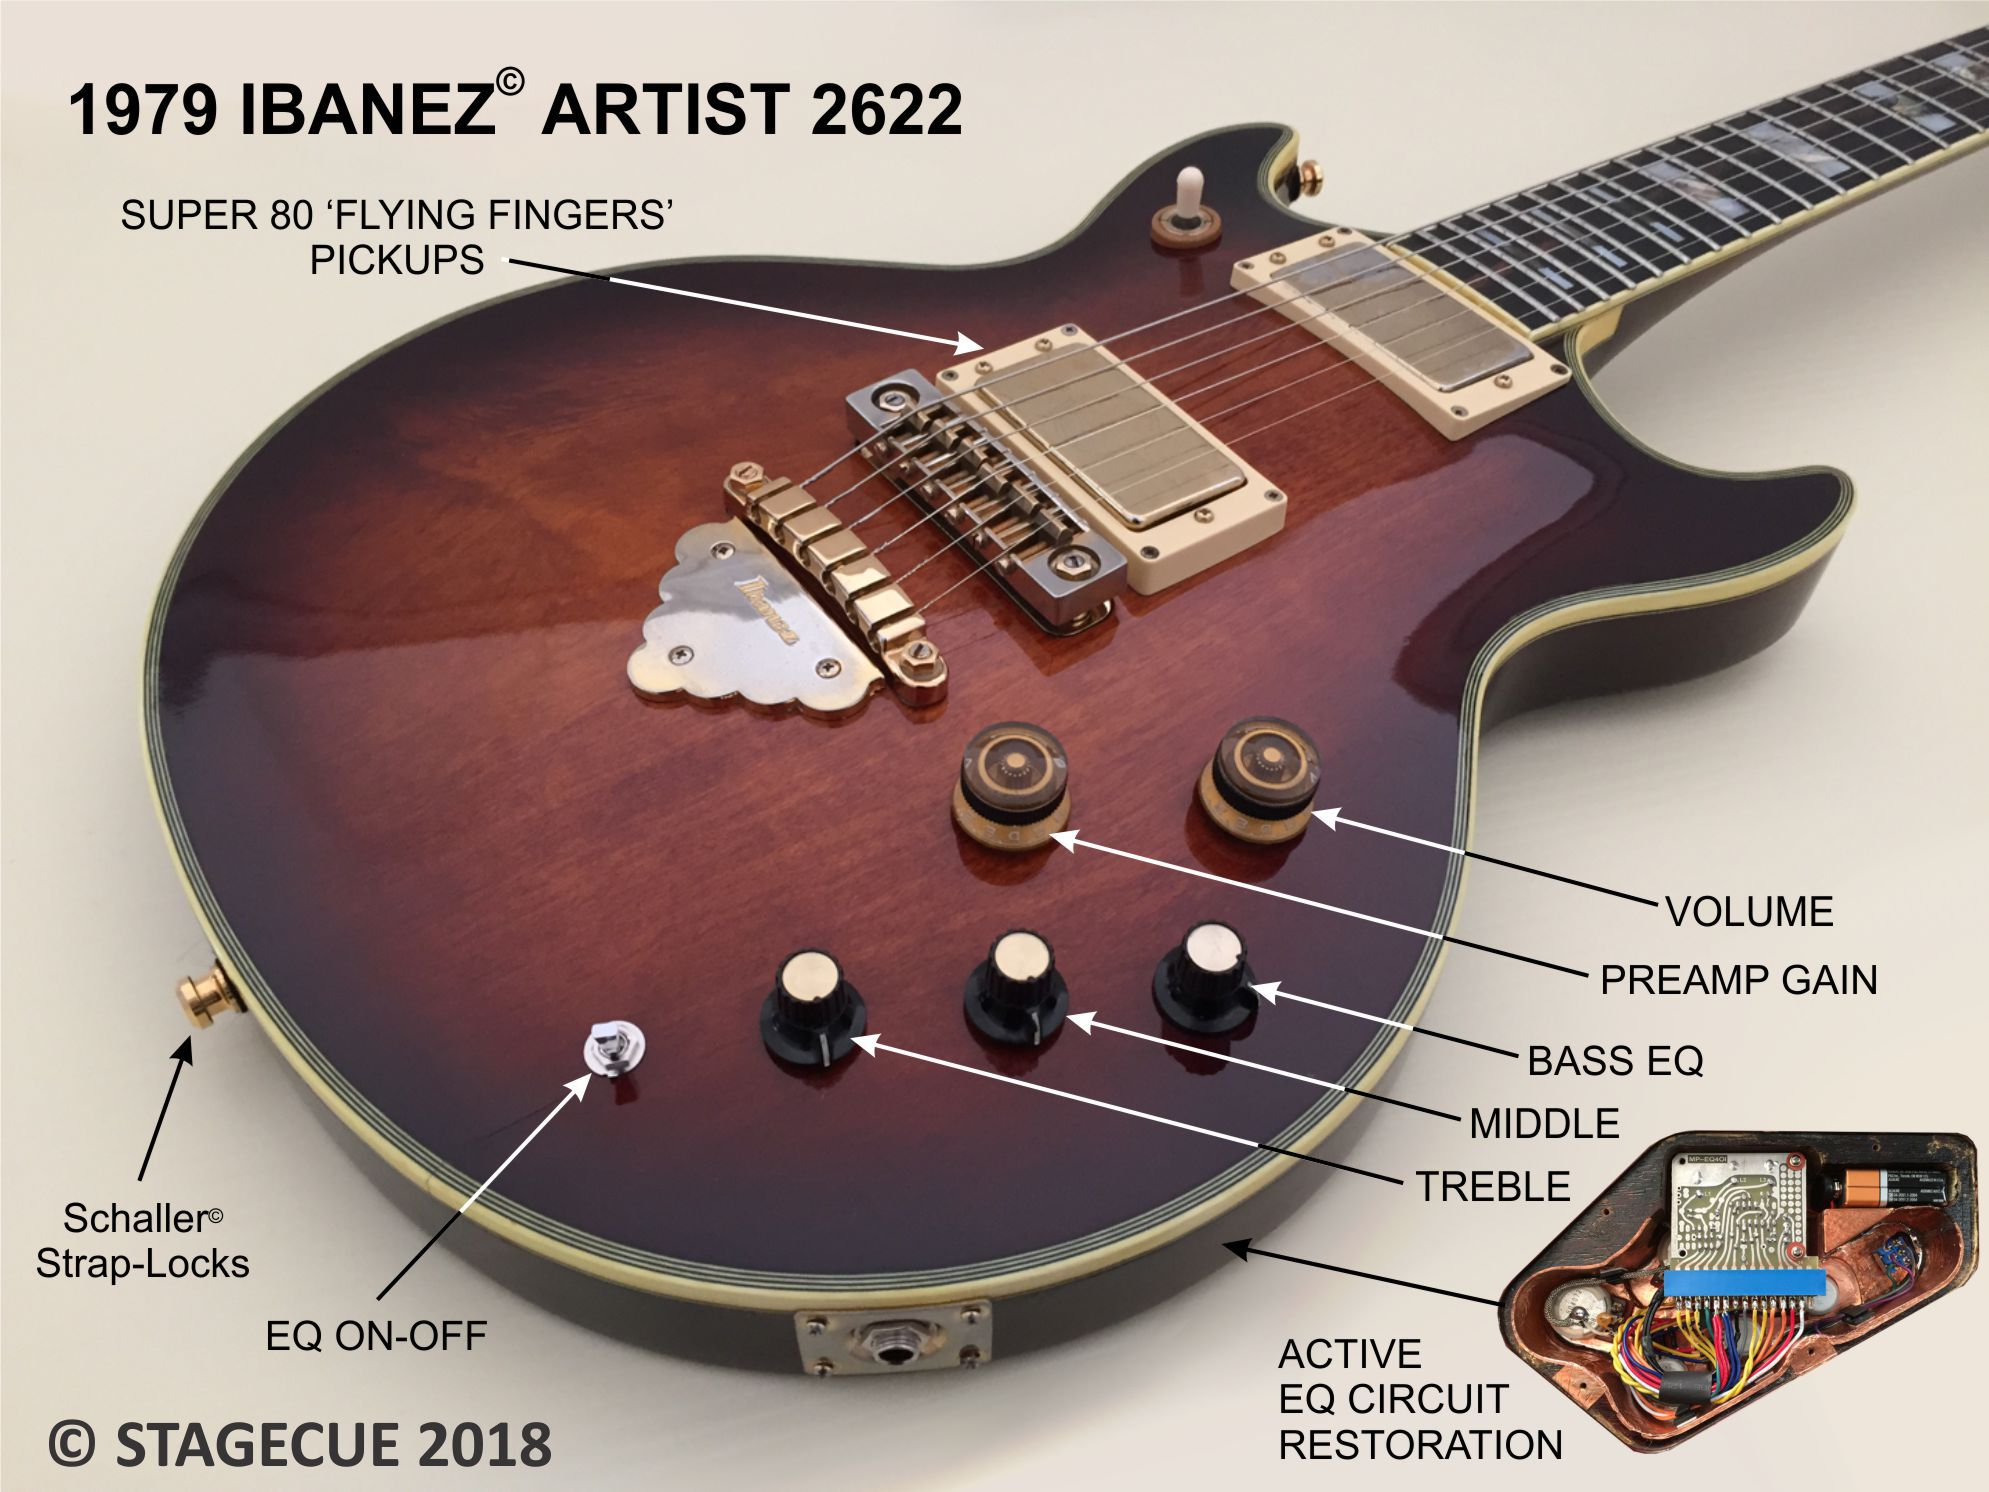 Rg3700pict Guitar Wiring Drawings Switching System Ibanez Ibanez